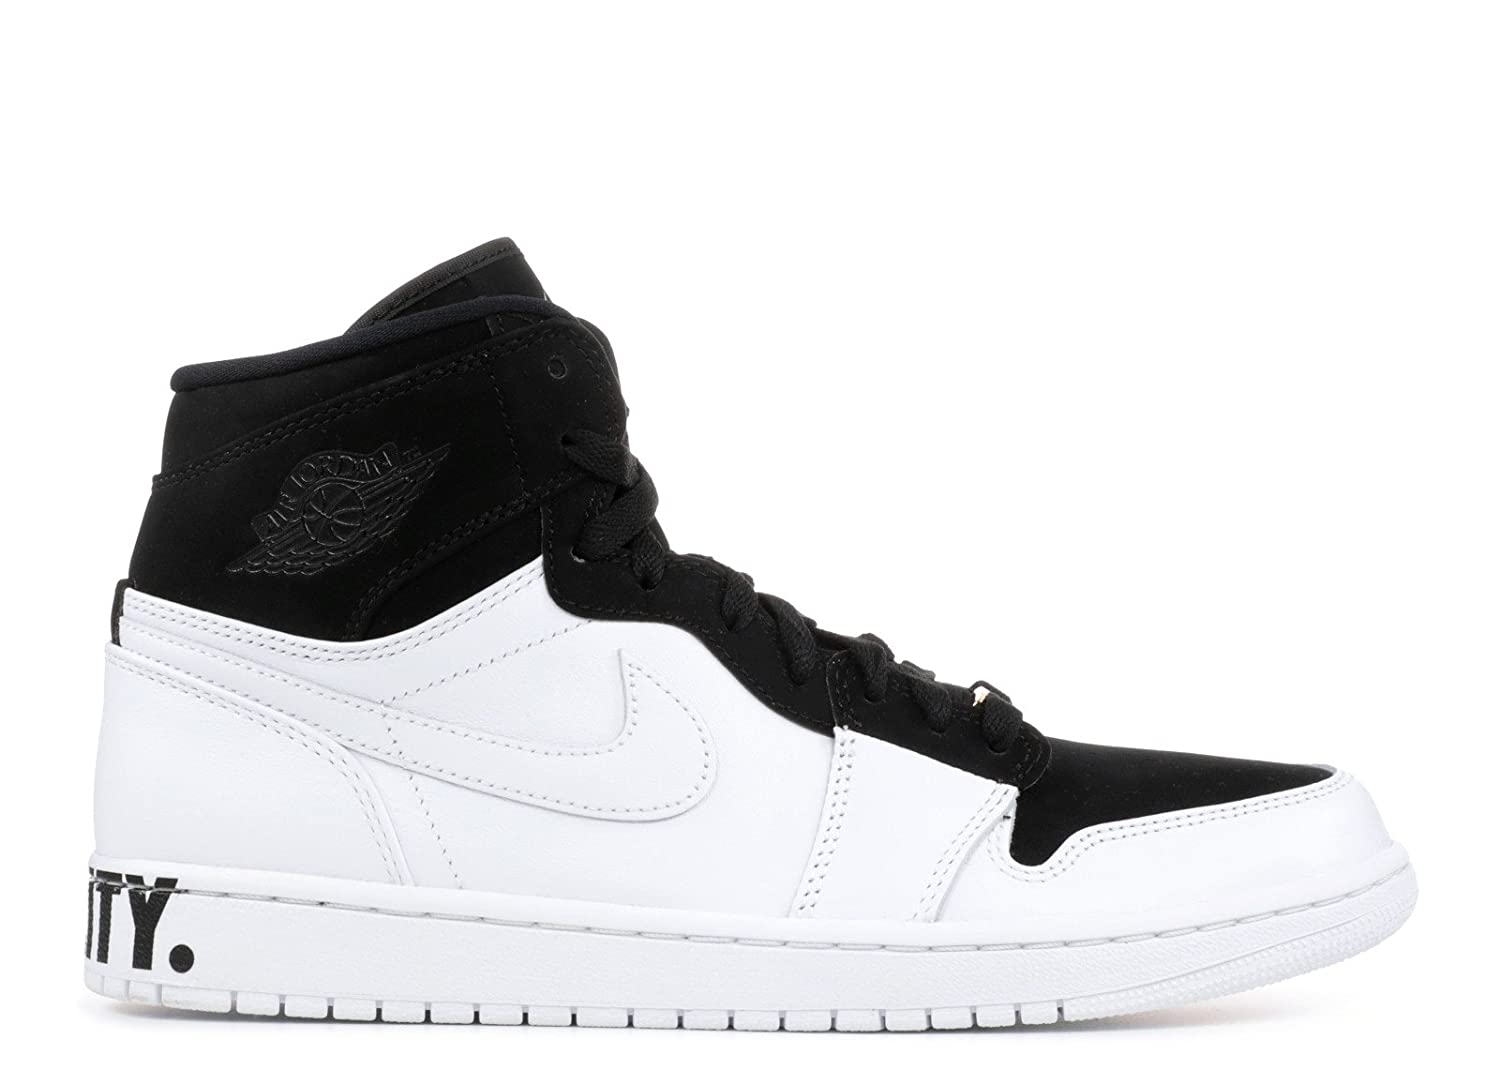 size 40 069de a10ae Amazon.com   Nike Air Jordan 1 Retro Hi Equality Basketball Shoes (AQ7474- 001) (Black Black-White, 11 D(M) US)   Basketball